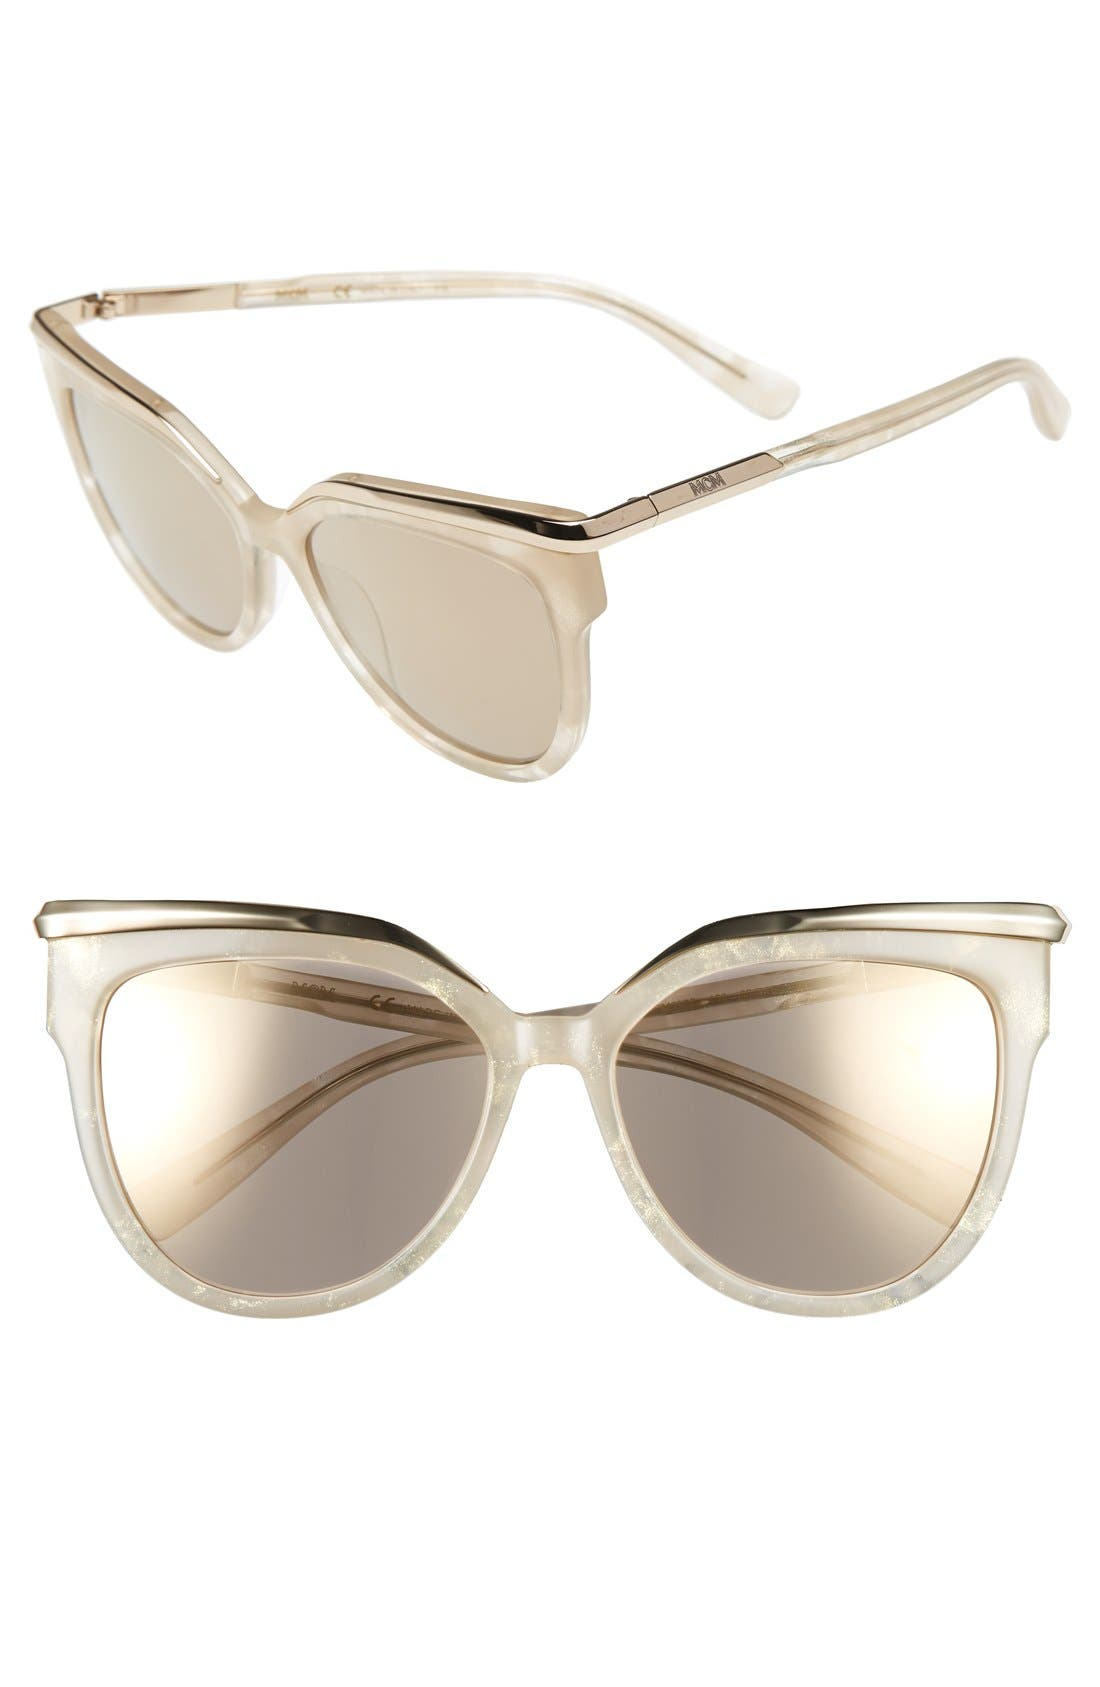 56mm Cat Eye Sunglasses, Main, color, SPARKLY IVORY